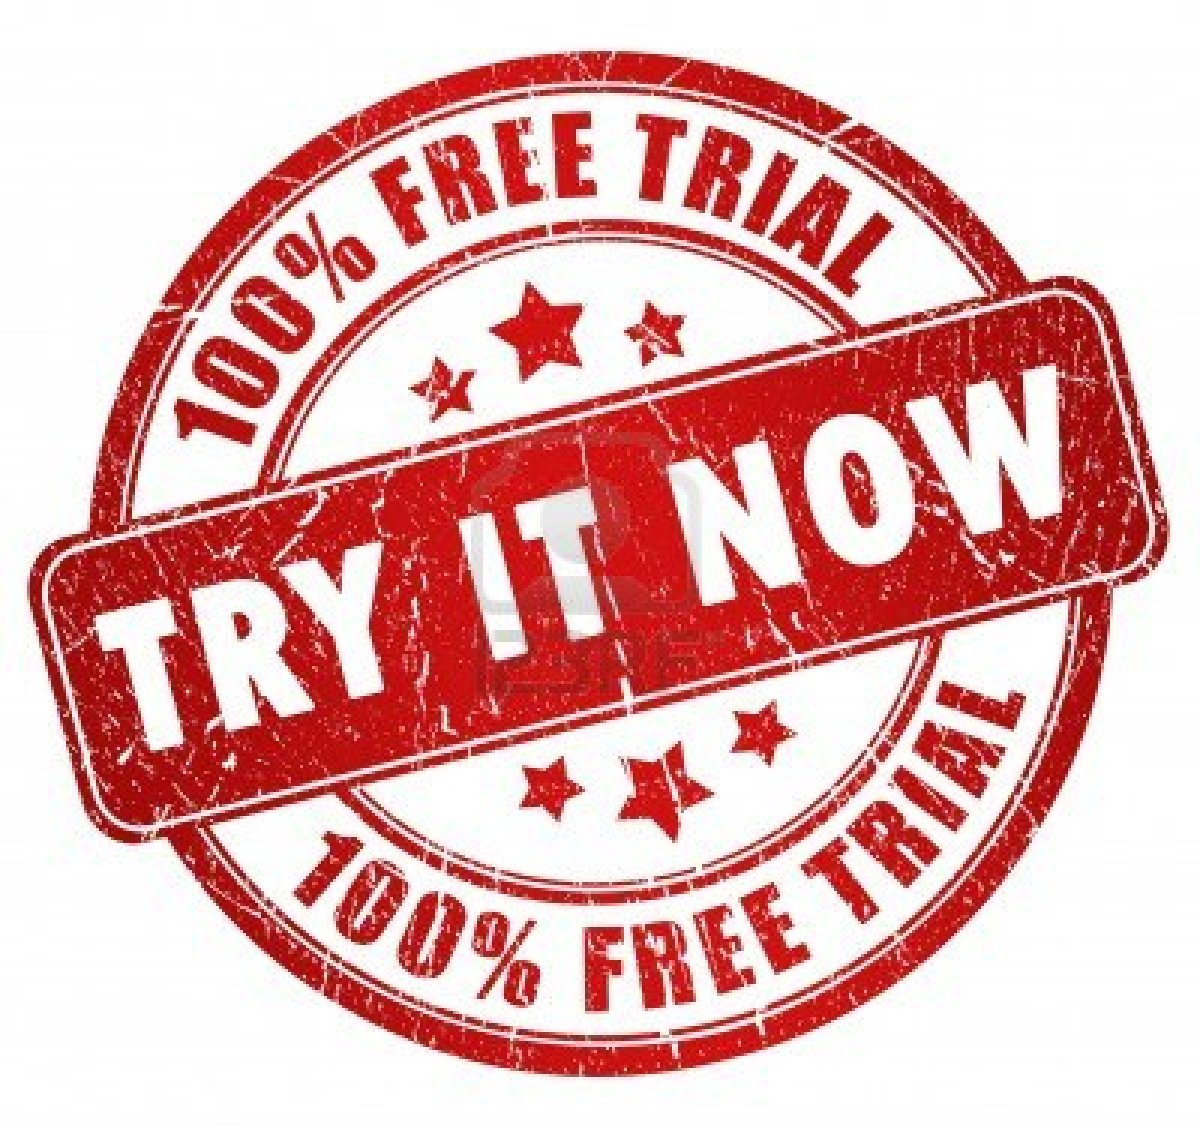 Online free trial offers